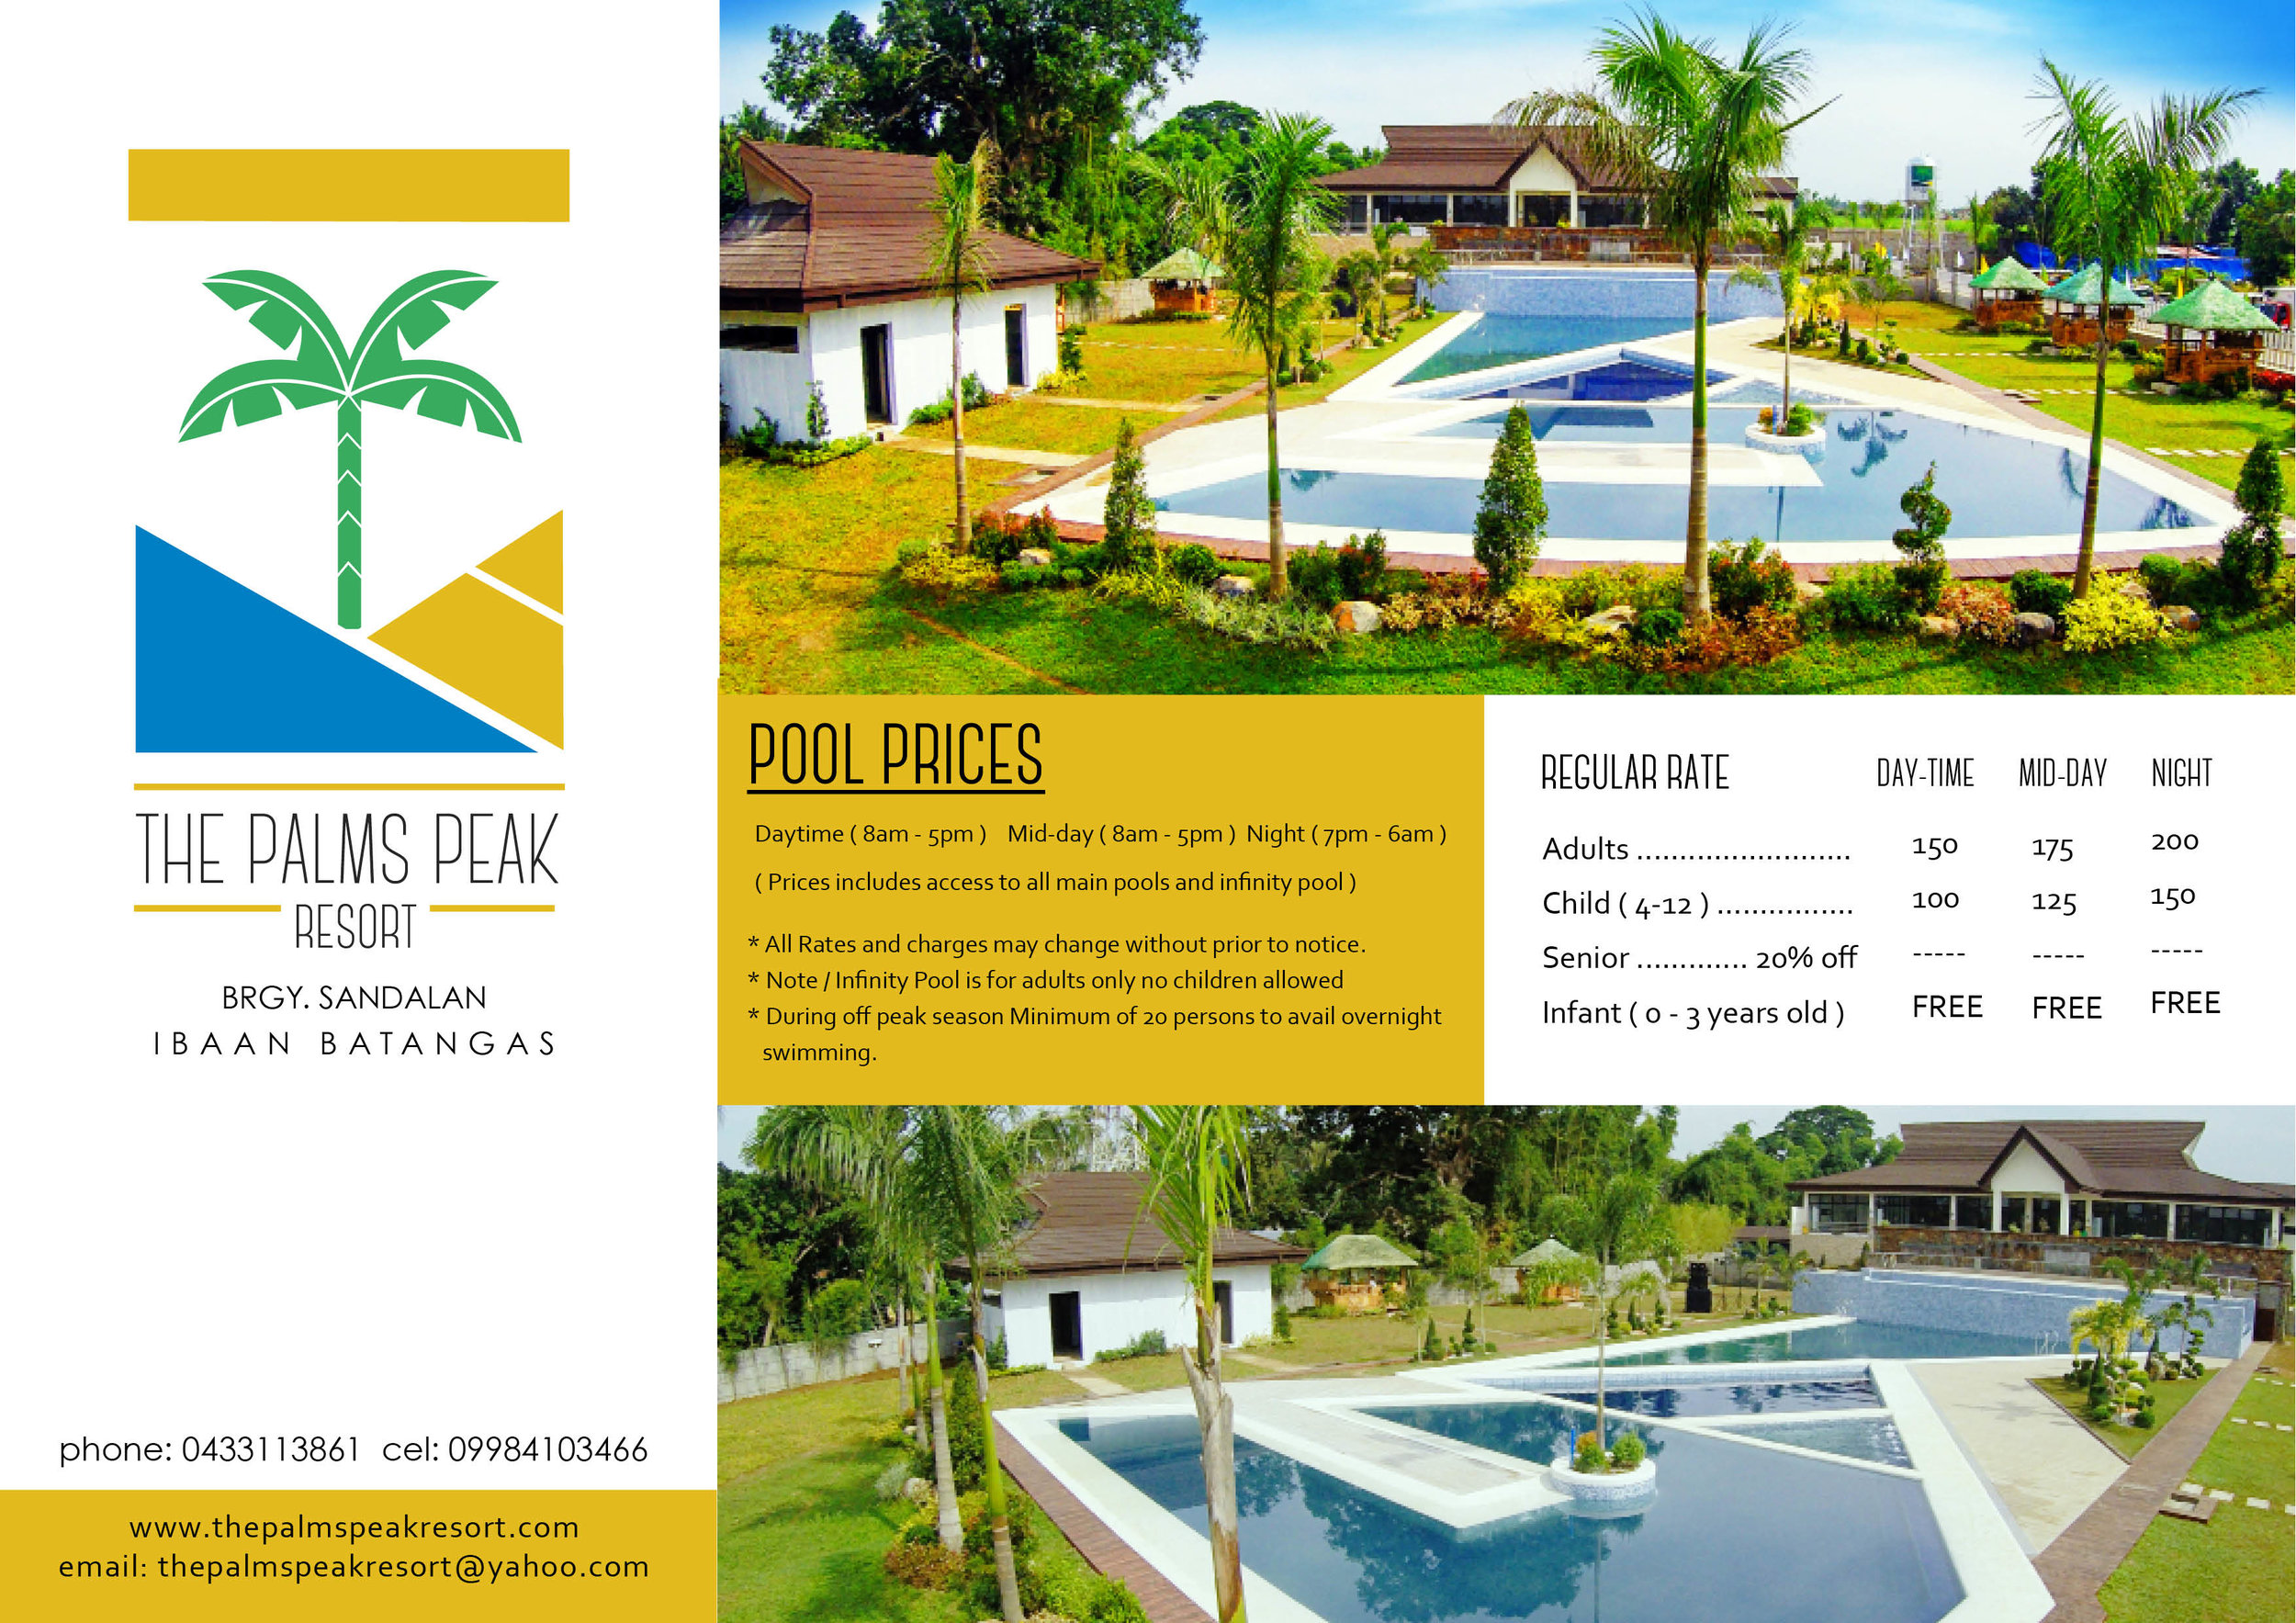 Palms peak Official Leaflet.jpg